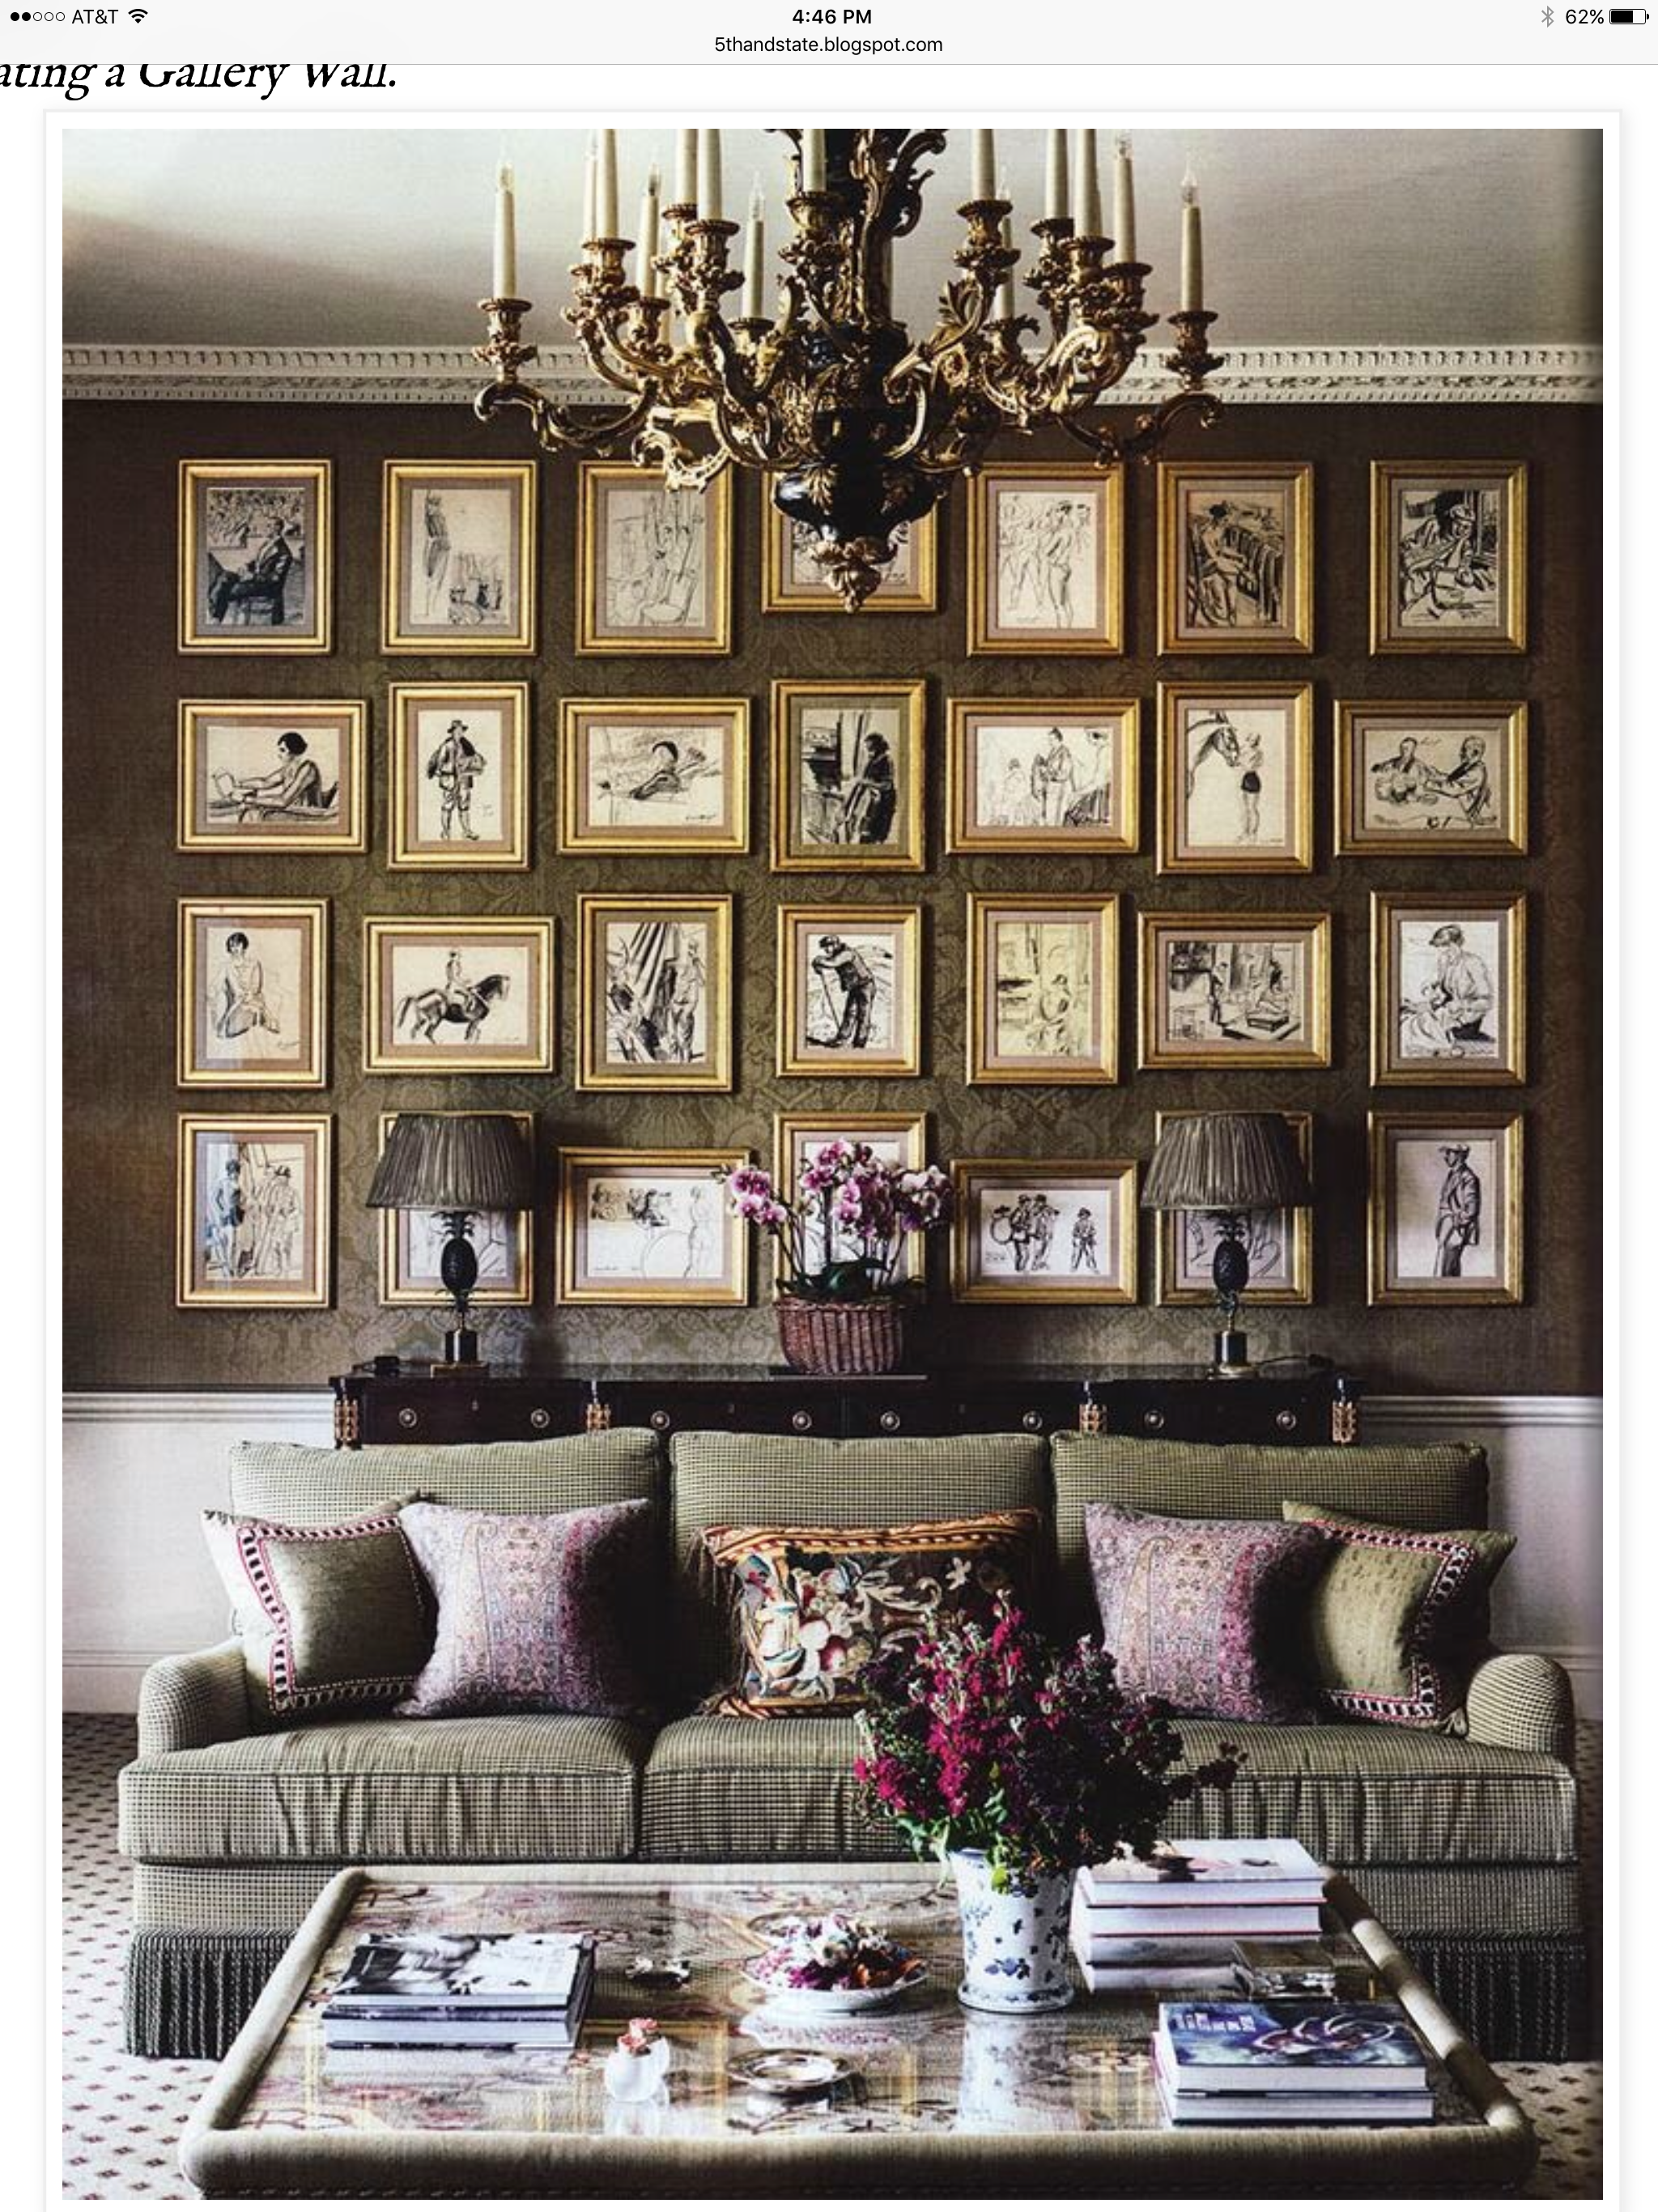 Pin by kim fellows on rooms i love pinterest walls